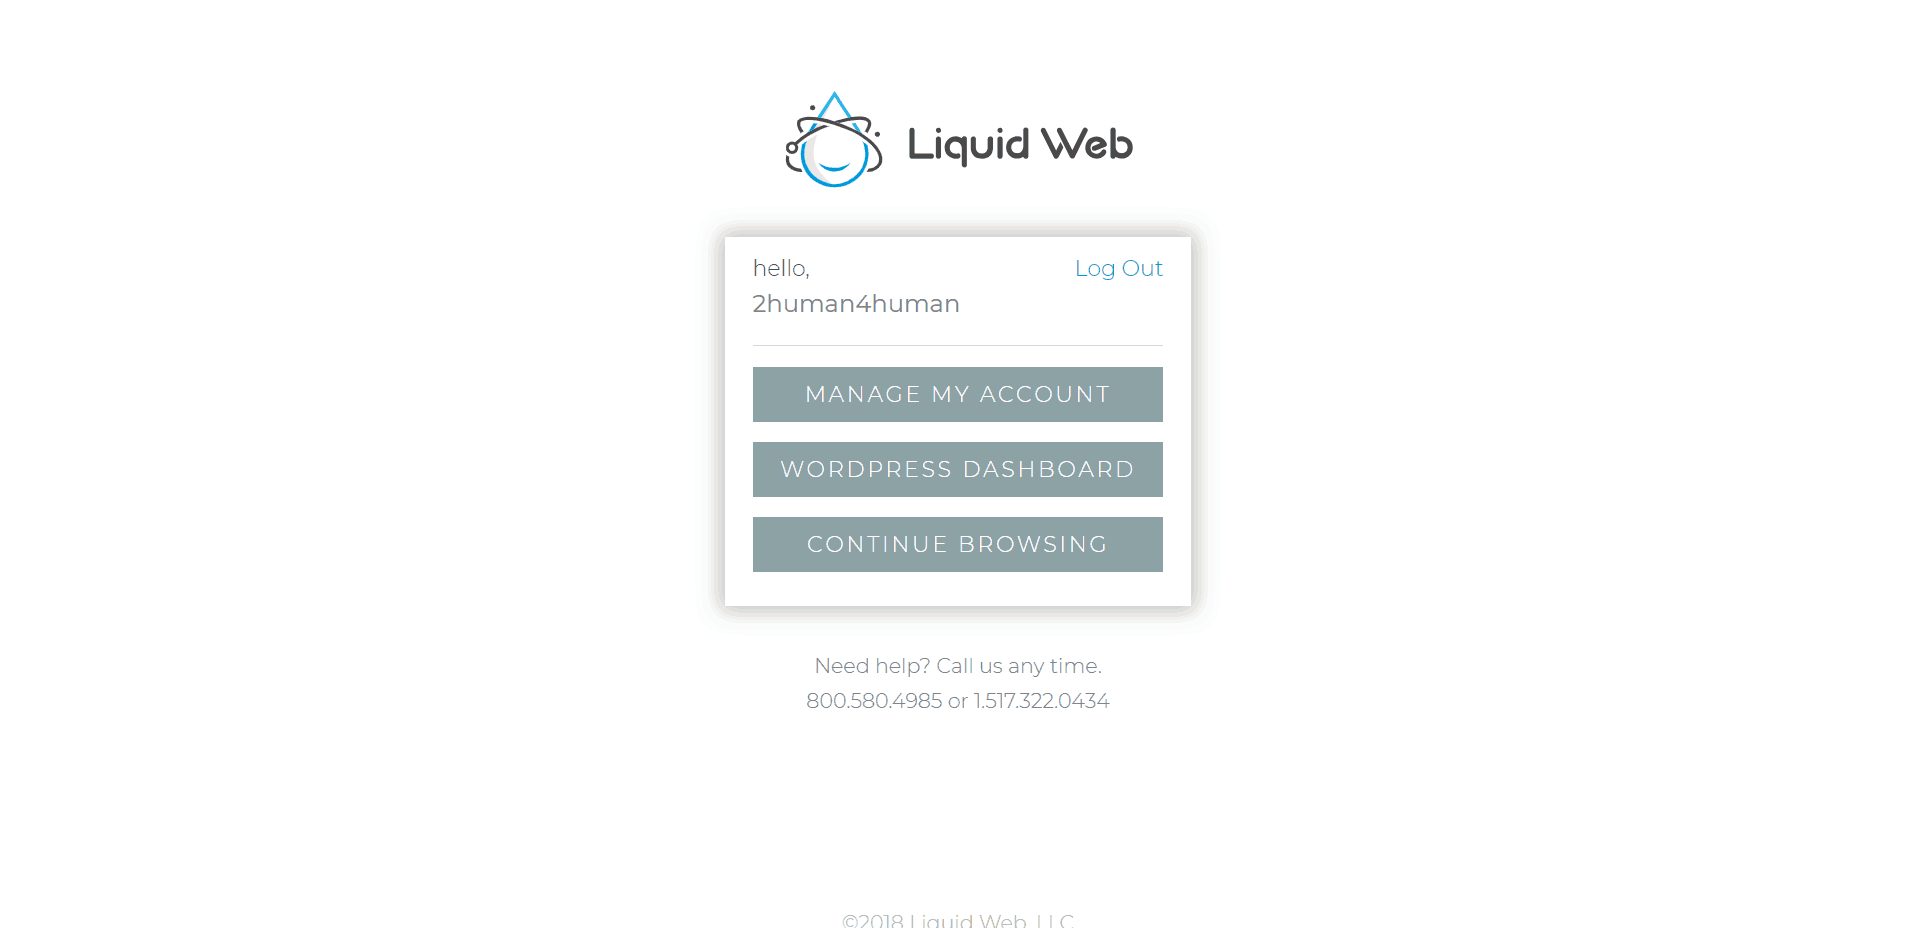 How-to-Connect-a-Domain-and-Install-WordPress-on-Liquid-Web-image1